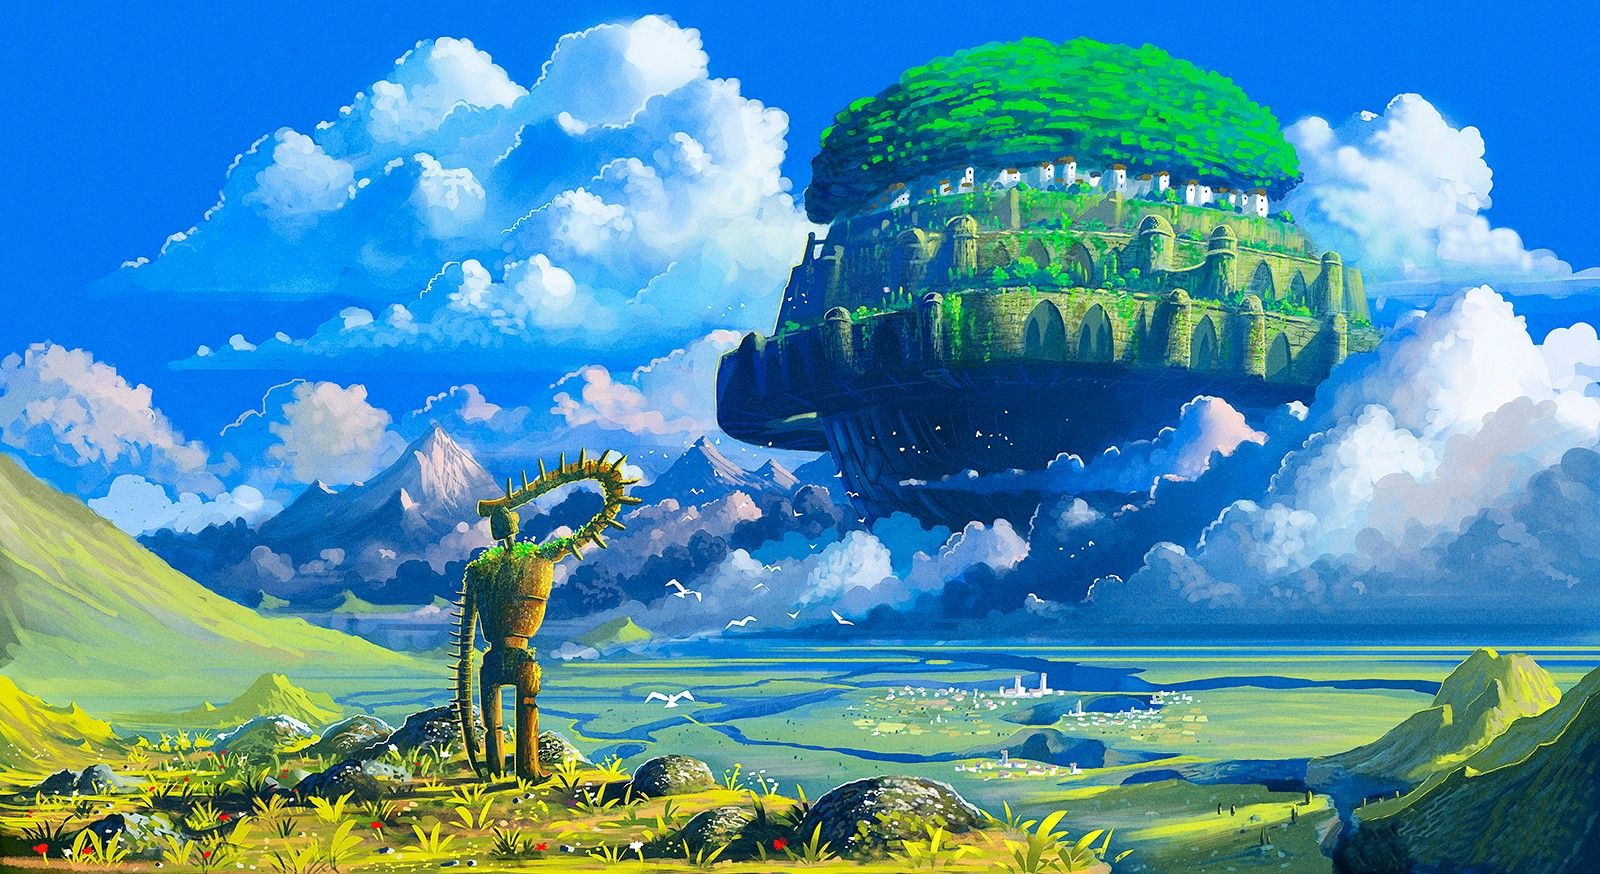 Animeegoists anime list myanimelist hayao miyazaki studio ghibli castle in the sky robot anime floating island hd wallpaper desktop background voltagebd